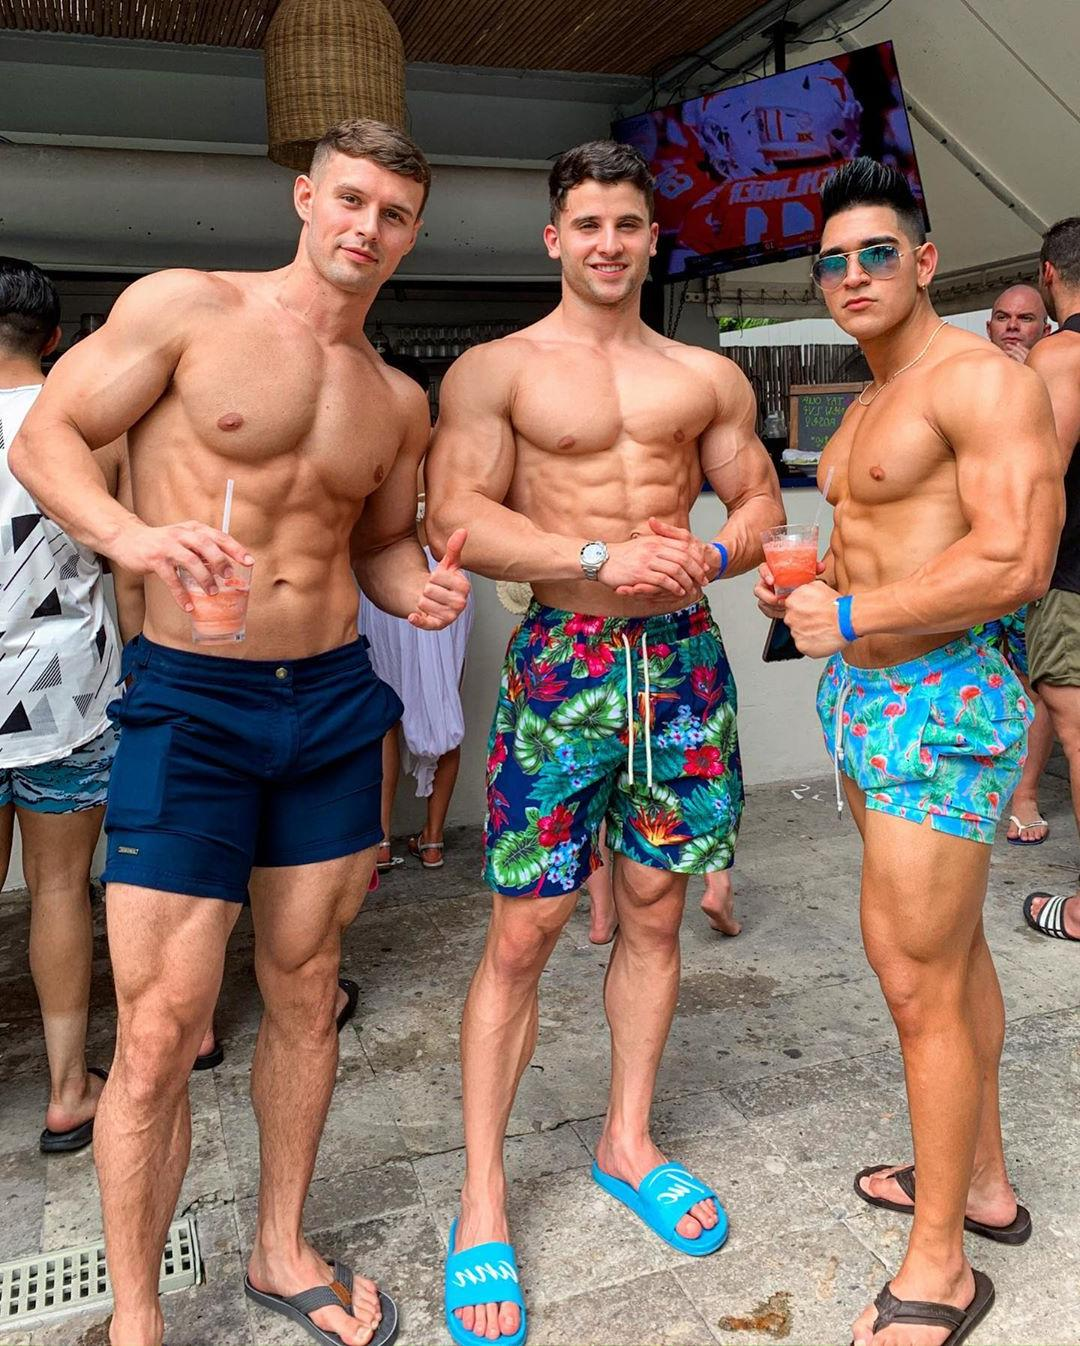 third-time-is-the-charm-shirtless-muscle-buddies-drinking-alcohol-crazy-summer-hookup-party